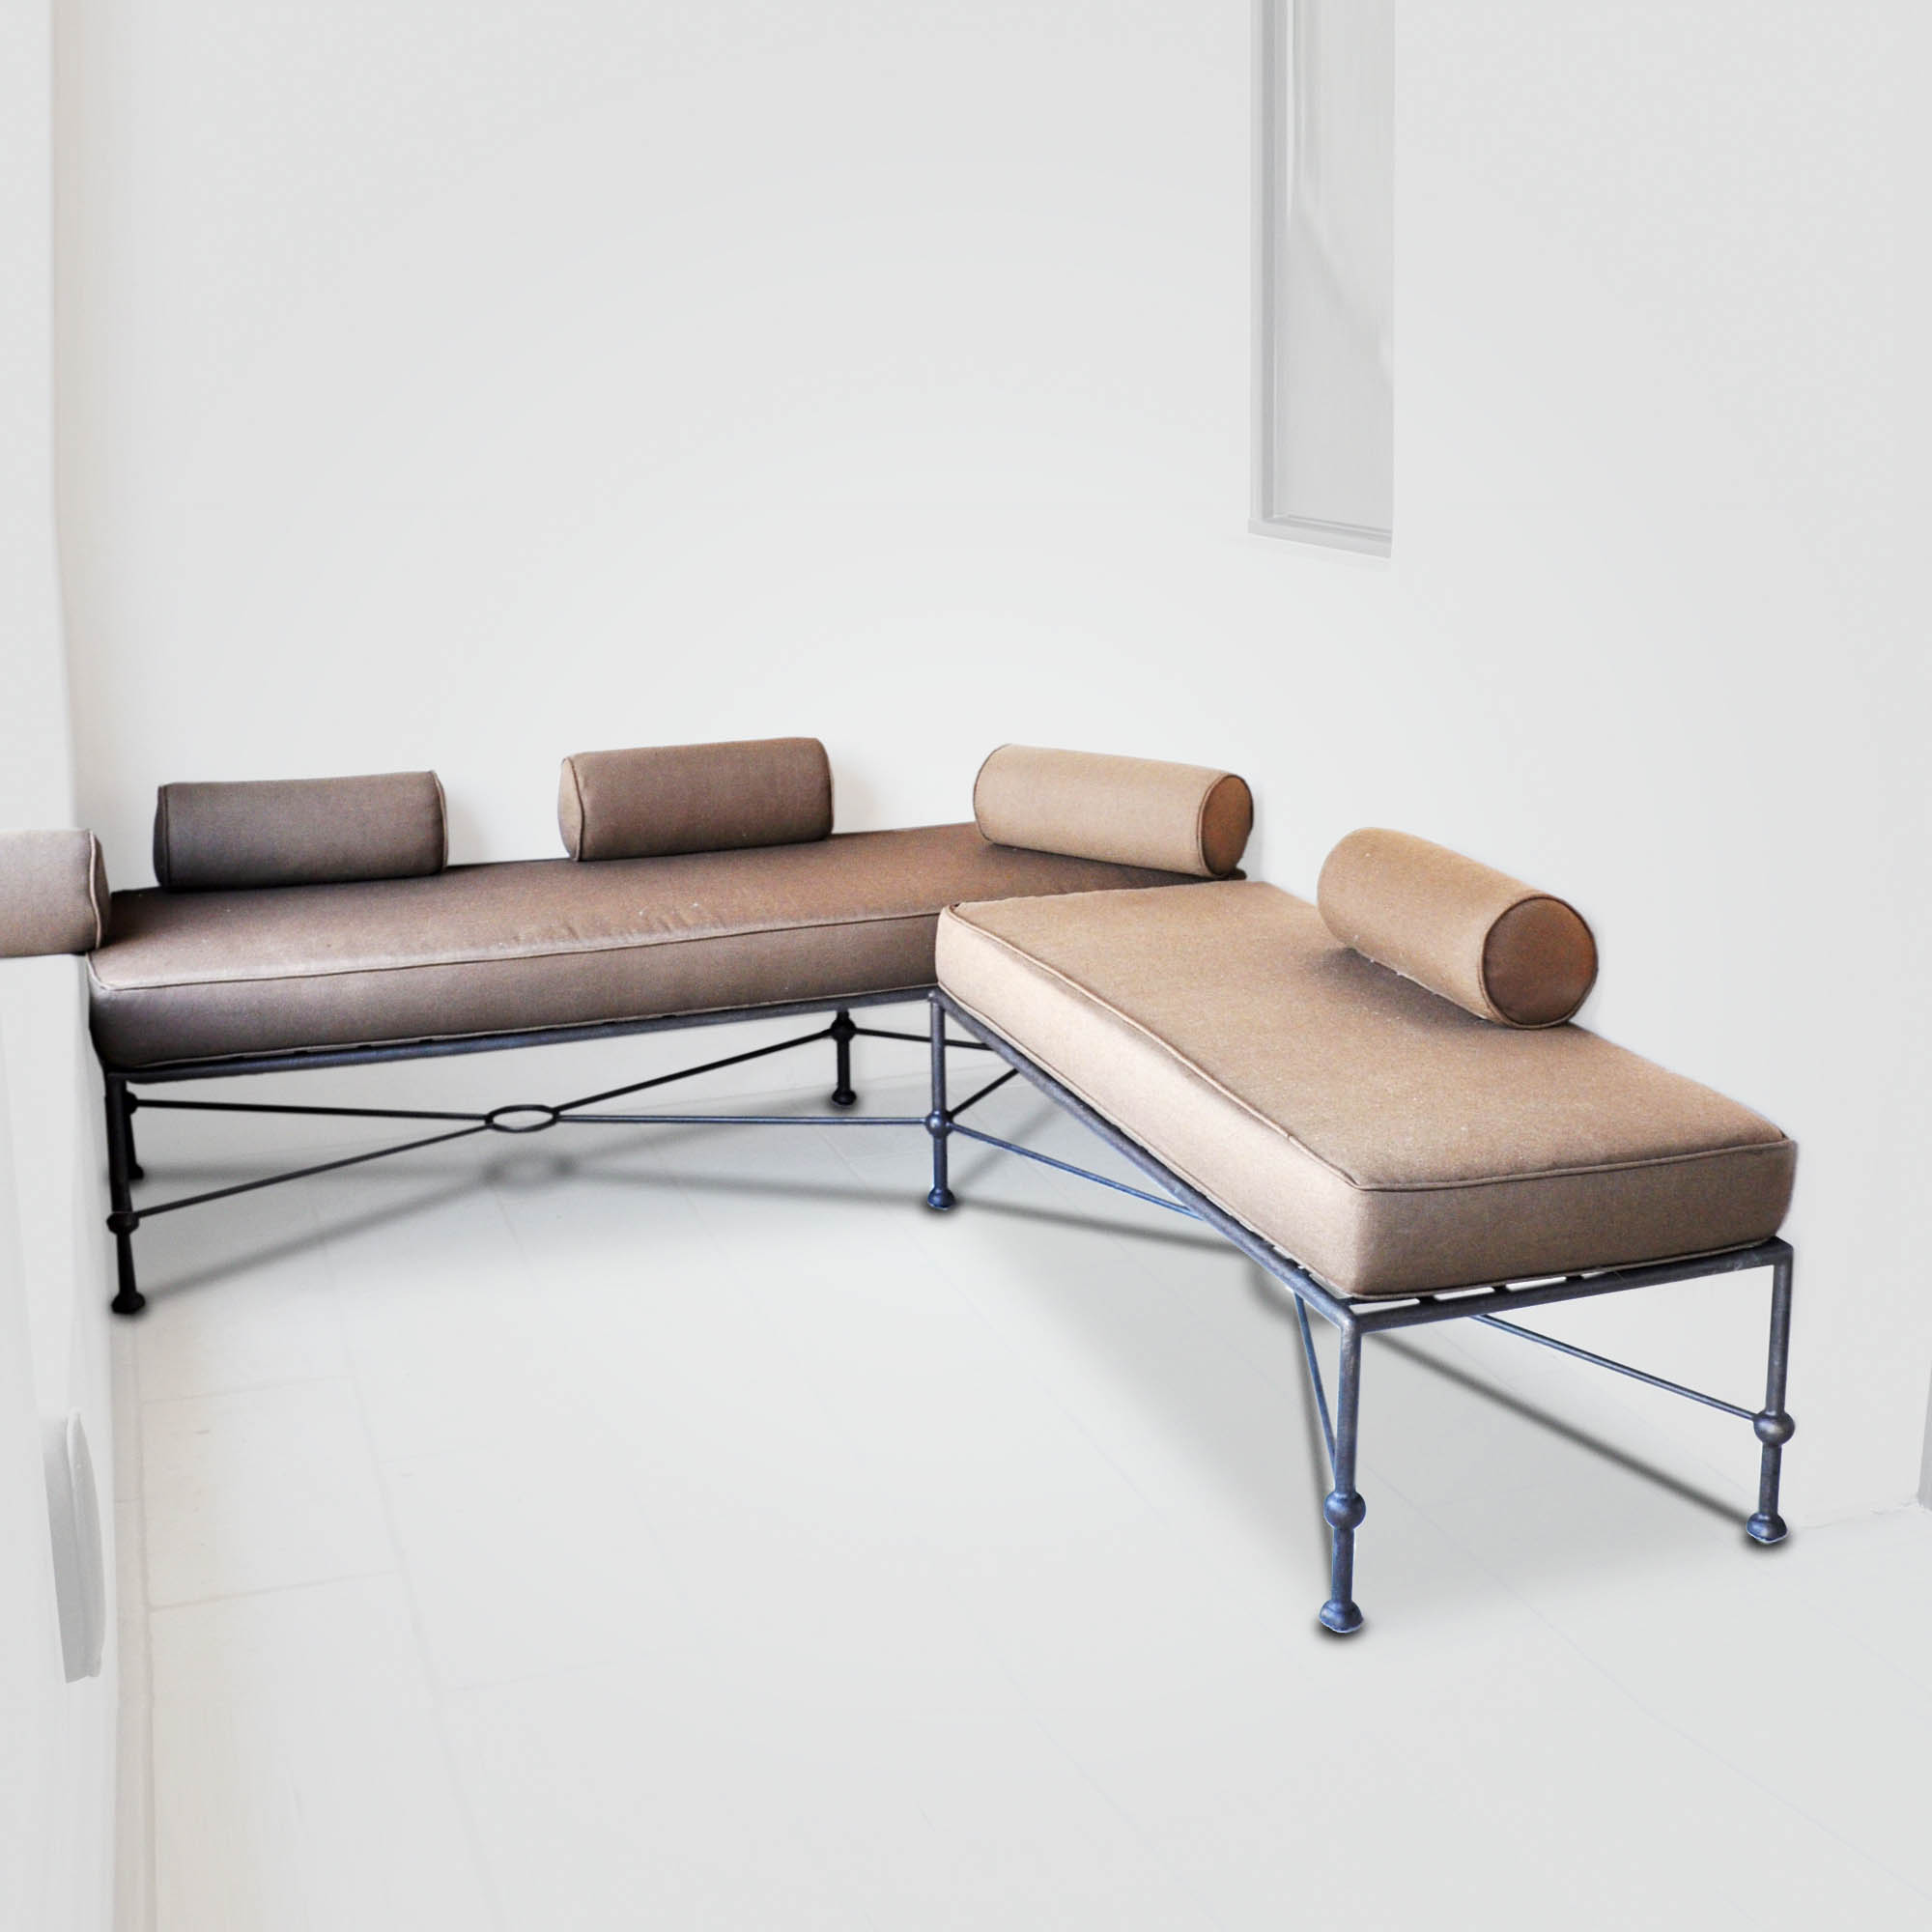 10003.1004 Low-back Sofa Series Modern Twist to Classic Iron Furniture – ADG Lighting Collection